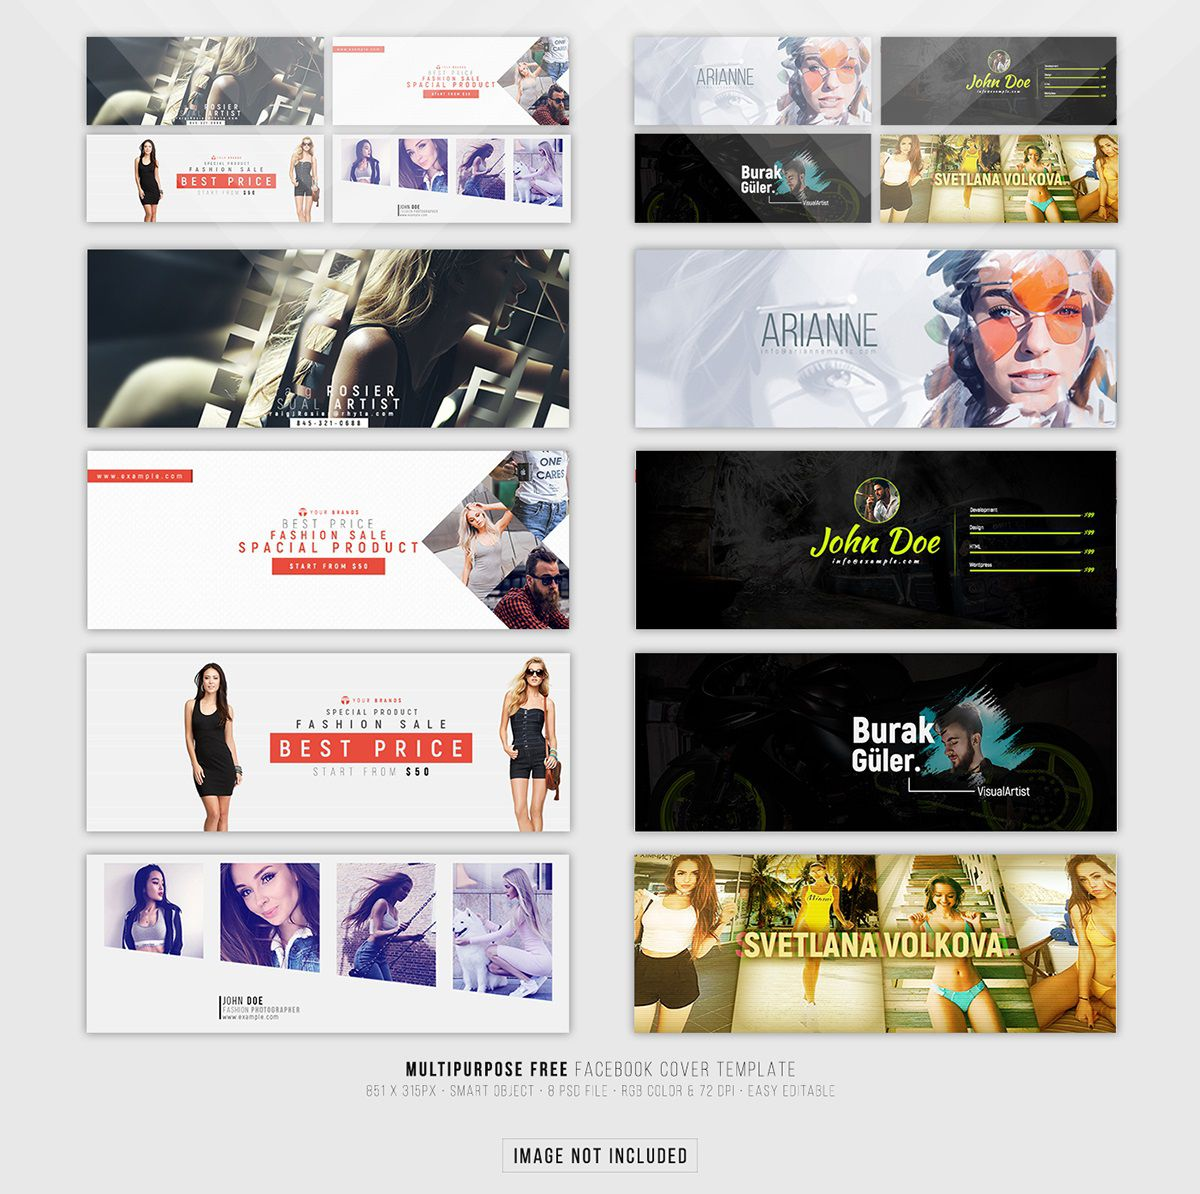 001 Wonderful Free Facebook Cover Template Example  Templates PhotoshopFull